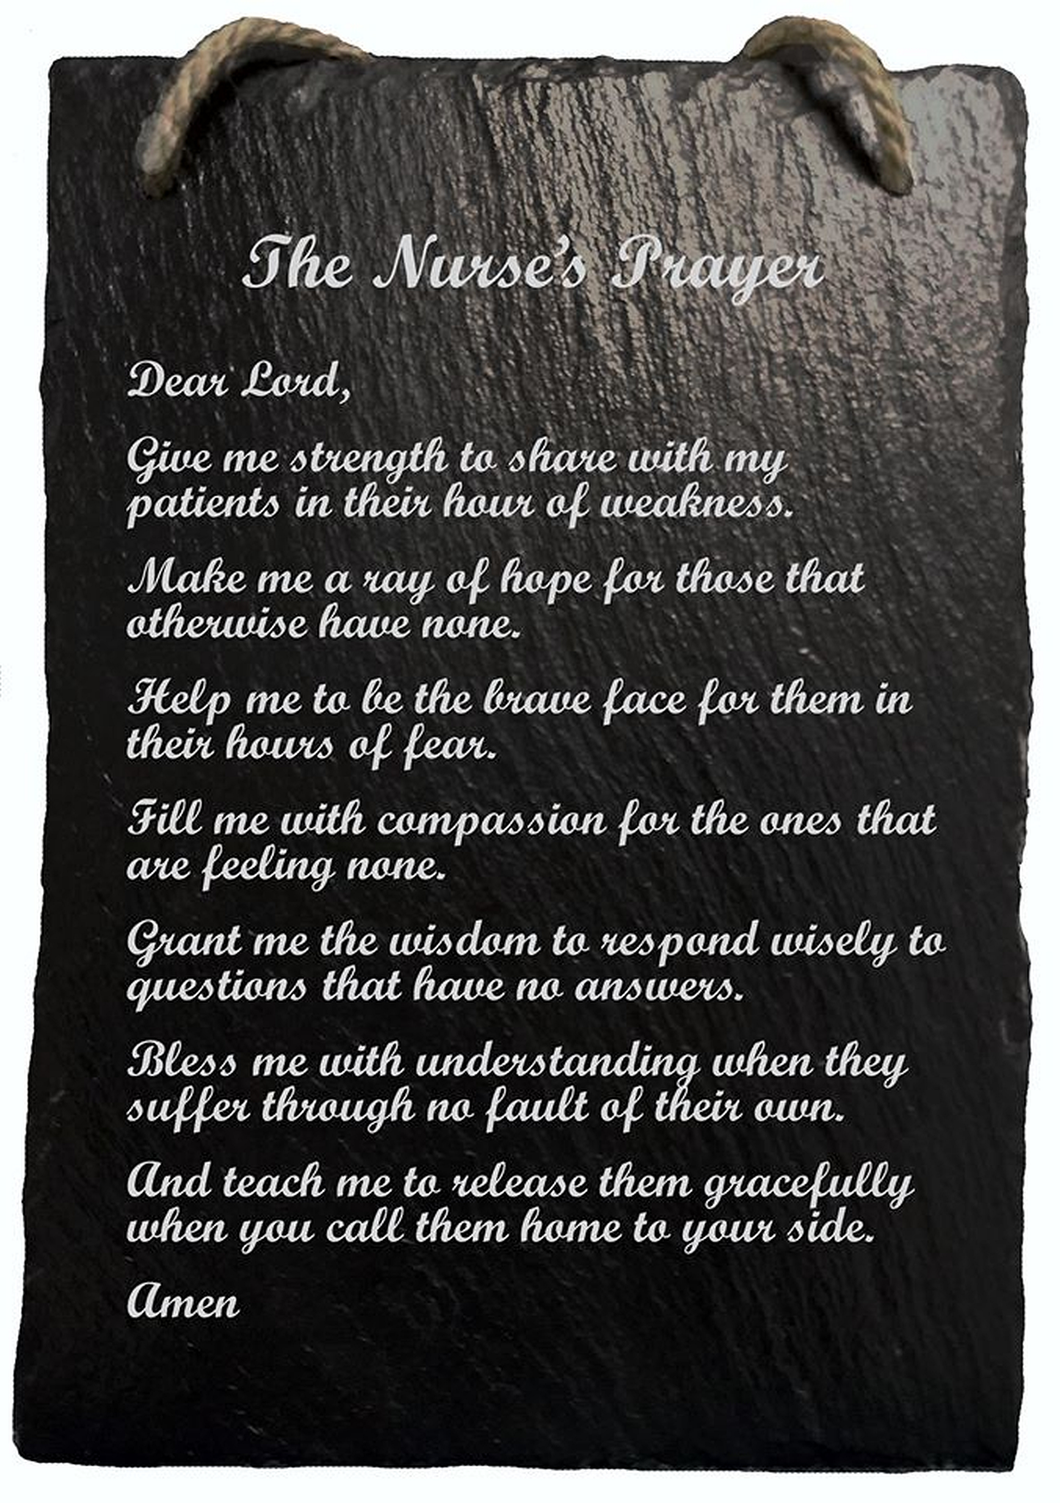 Nurse's Prayer Hanging Slate